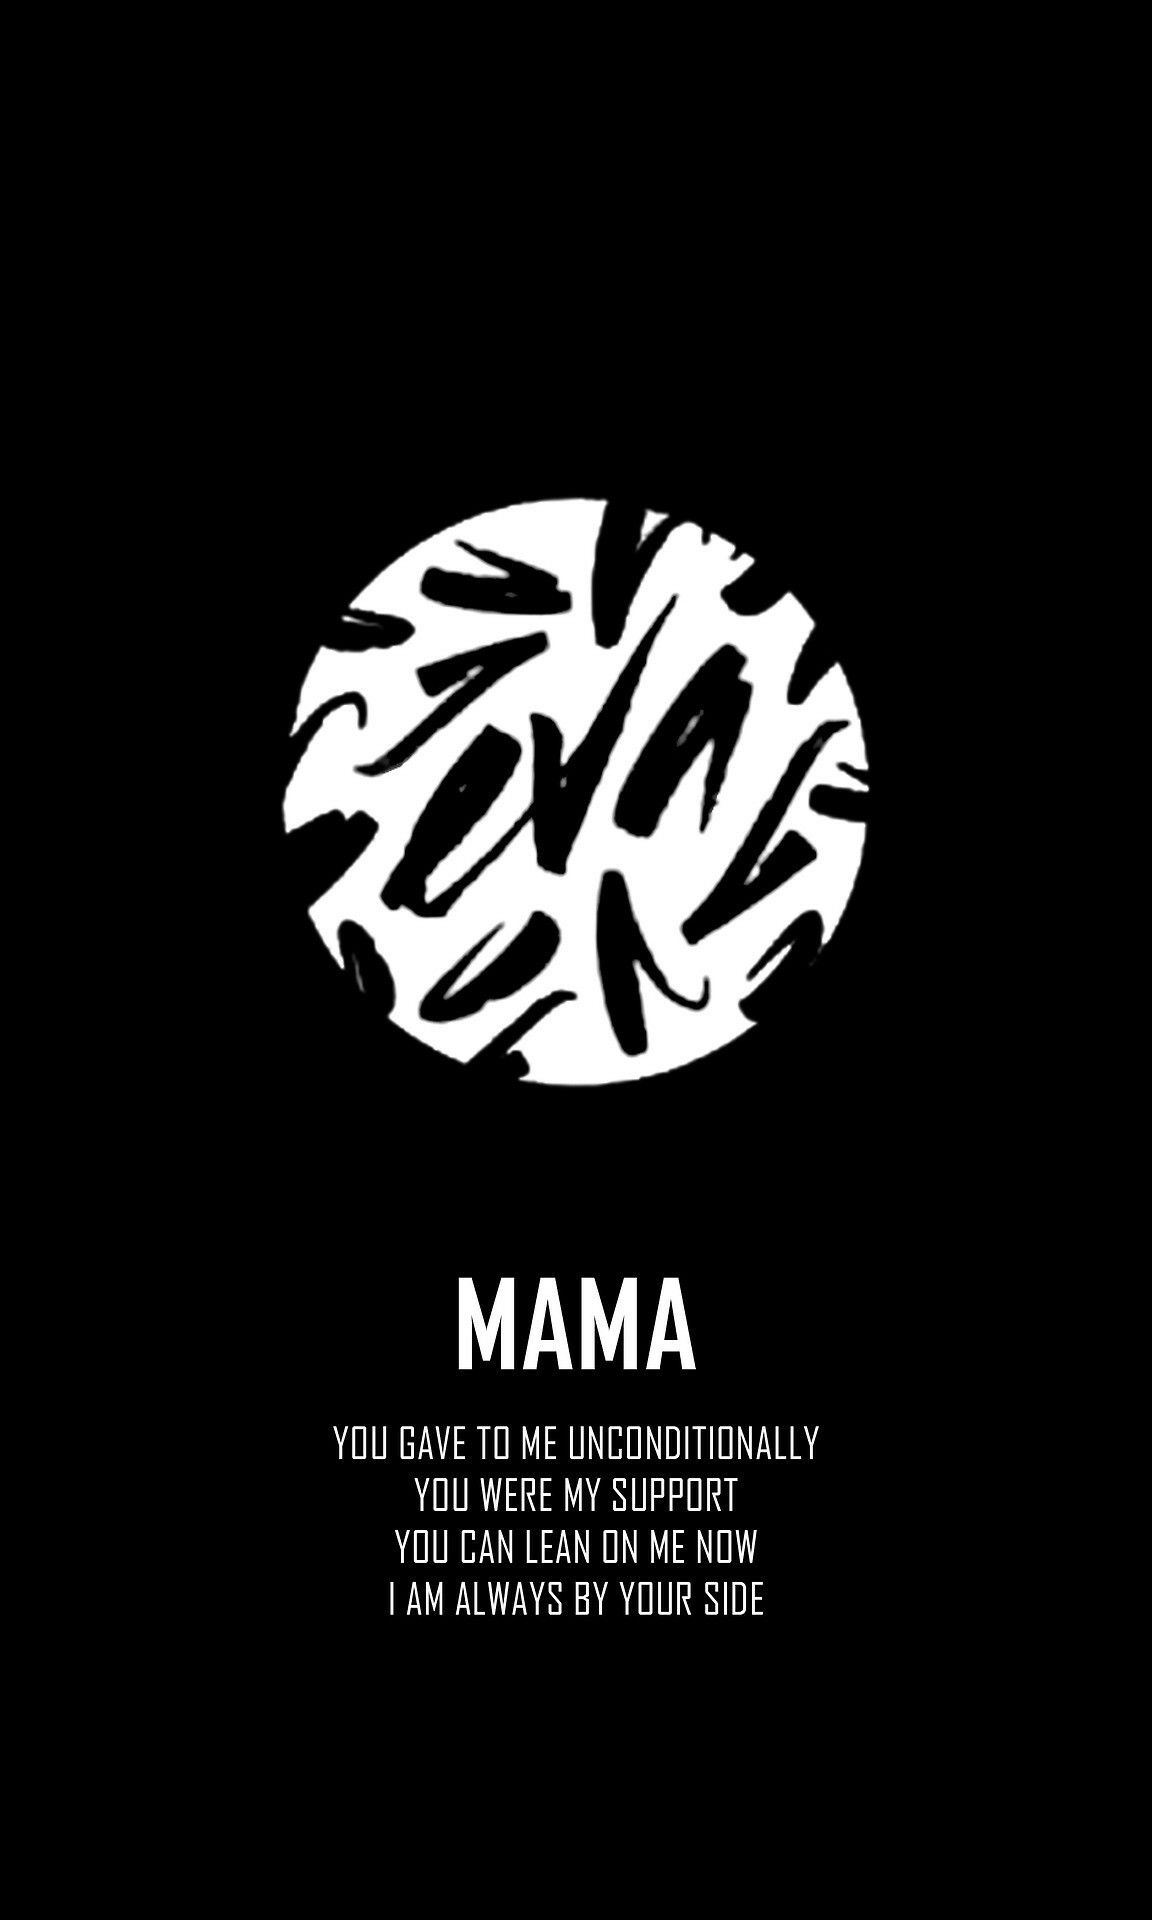 Bts wings short film logo mama wallpaper BTS BTS Papeis de 1152x1920